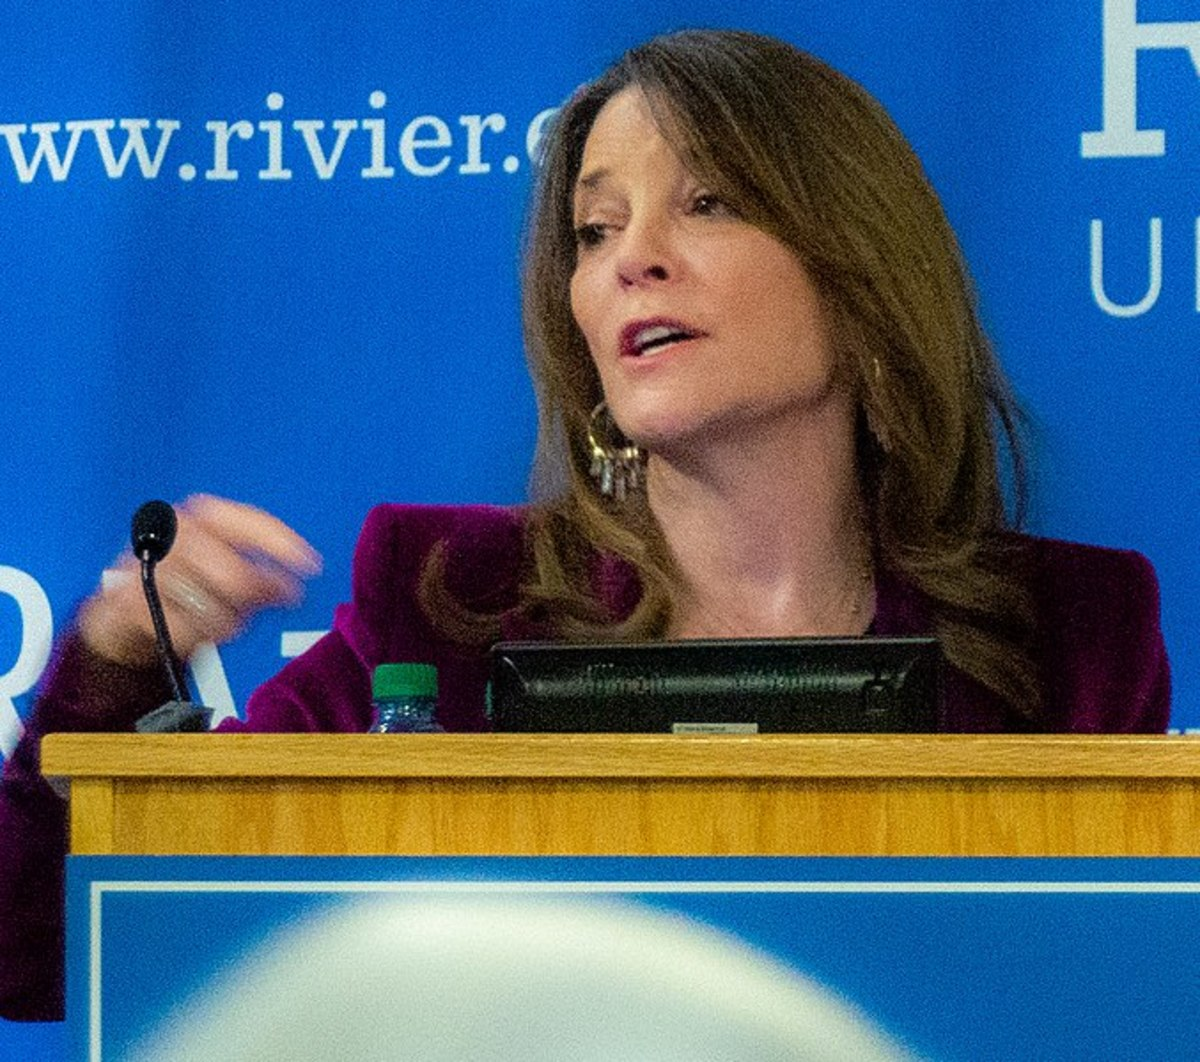 Marianne Williamson is 67 years old, a Texas native, and world famous author of metaphysical books.